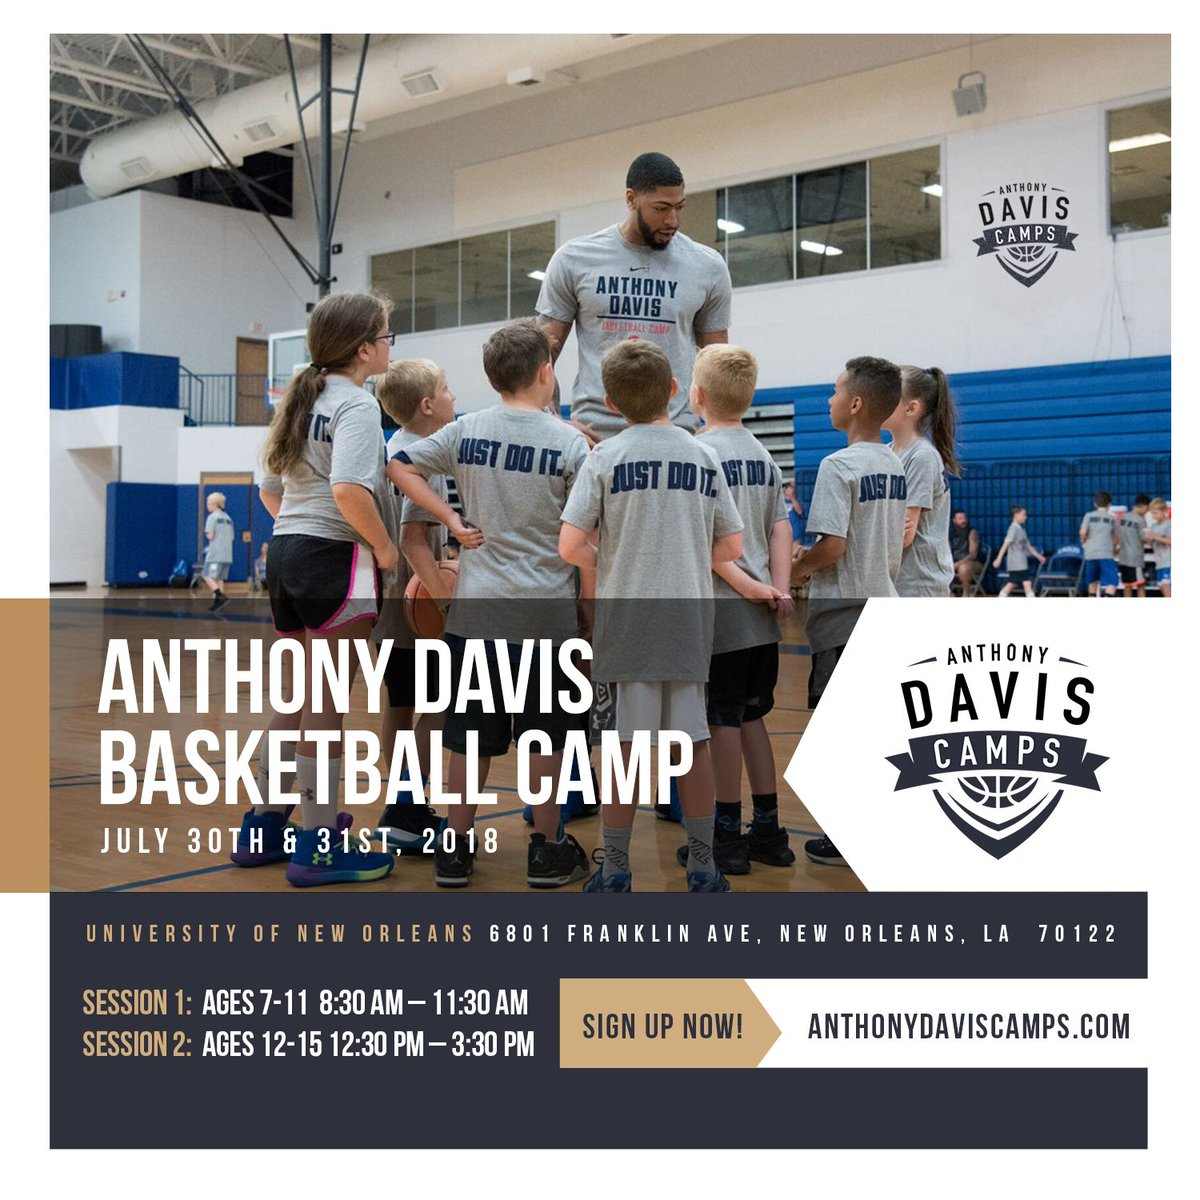 NOLA! Youre up next. Spots are going quickly for my camp July 30th and 31st. Sign up now at anthonydaviscamps.com